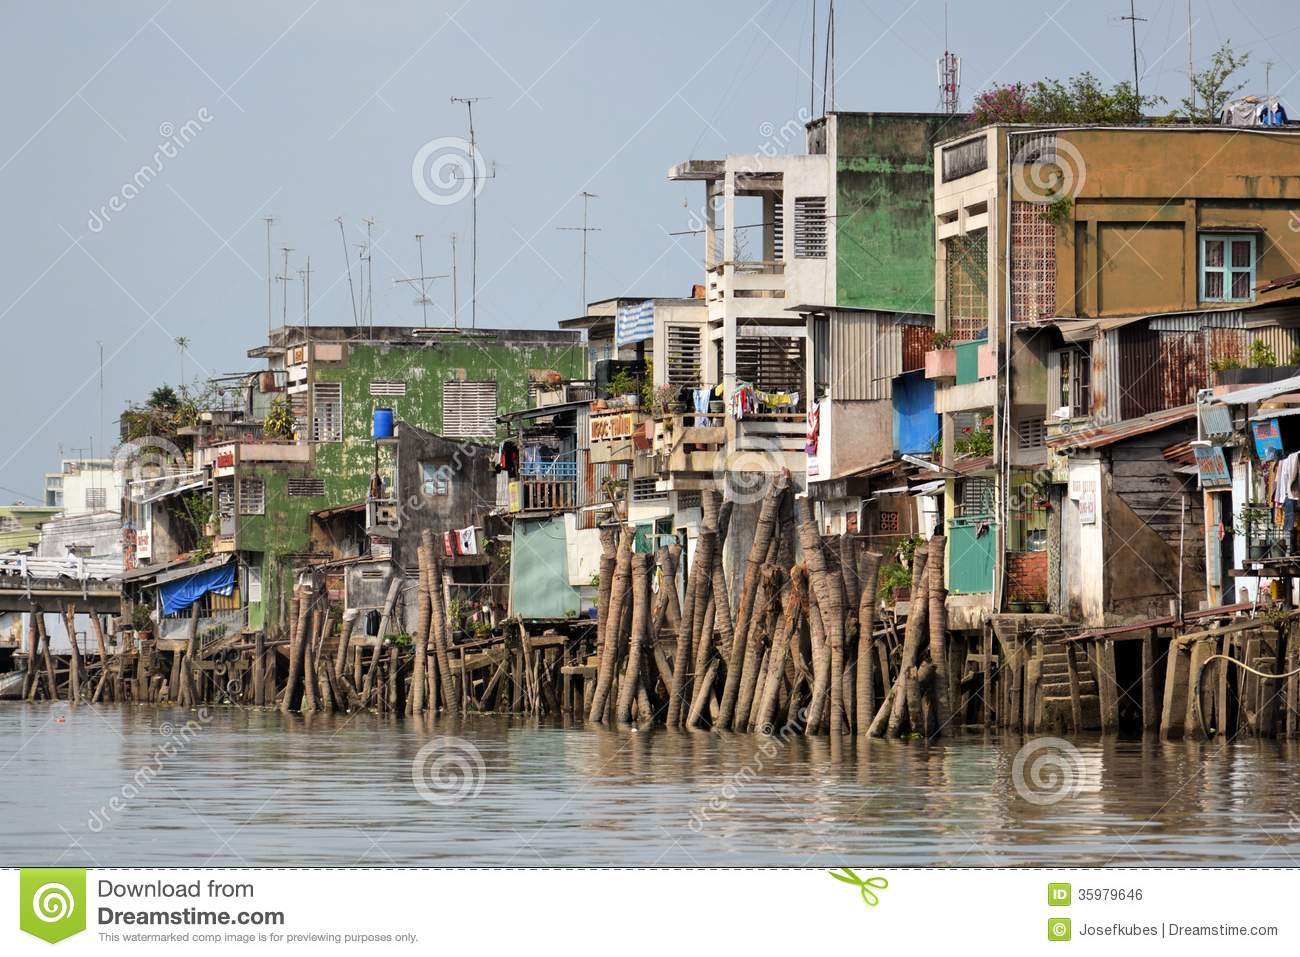 Pompeii in addition Phnom Penh What To Do And See together with Terminal Map further Alaskas Whimsical Dr Seuss House Is An Architectural Marvel as well Asia Philippines Manila. on vietnam houses in the city